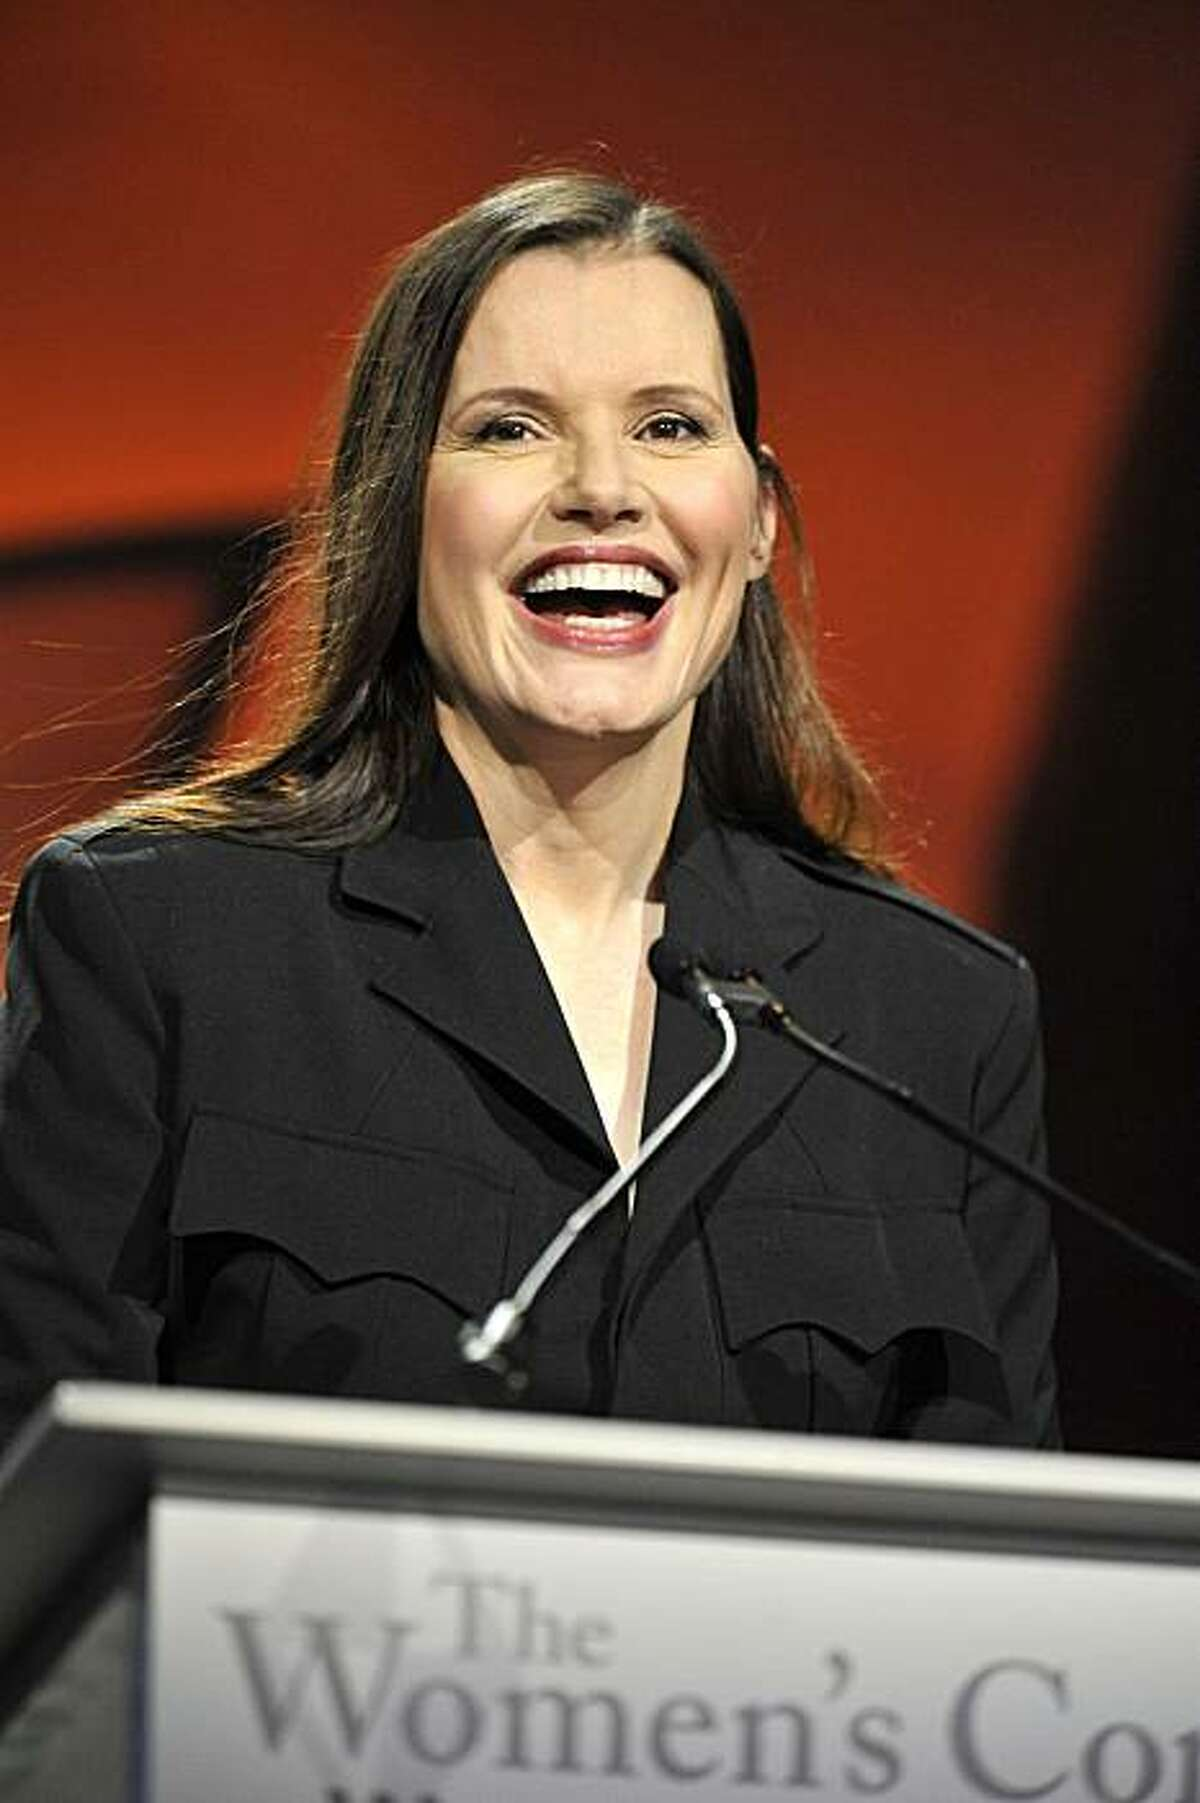 Geena Davis speaks at The 2009 Women's Conference held at Long Beach Convention Center on October 27, 2009 in Long Beach, Calif.